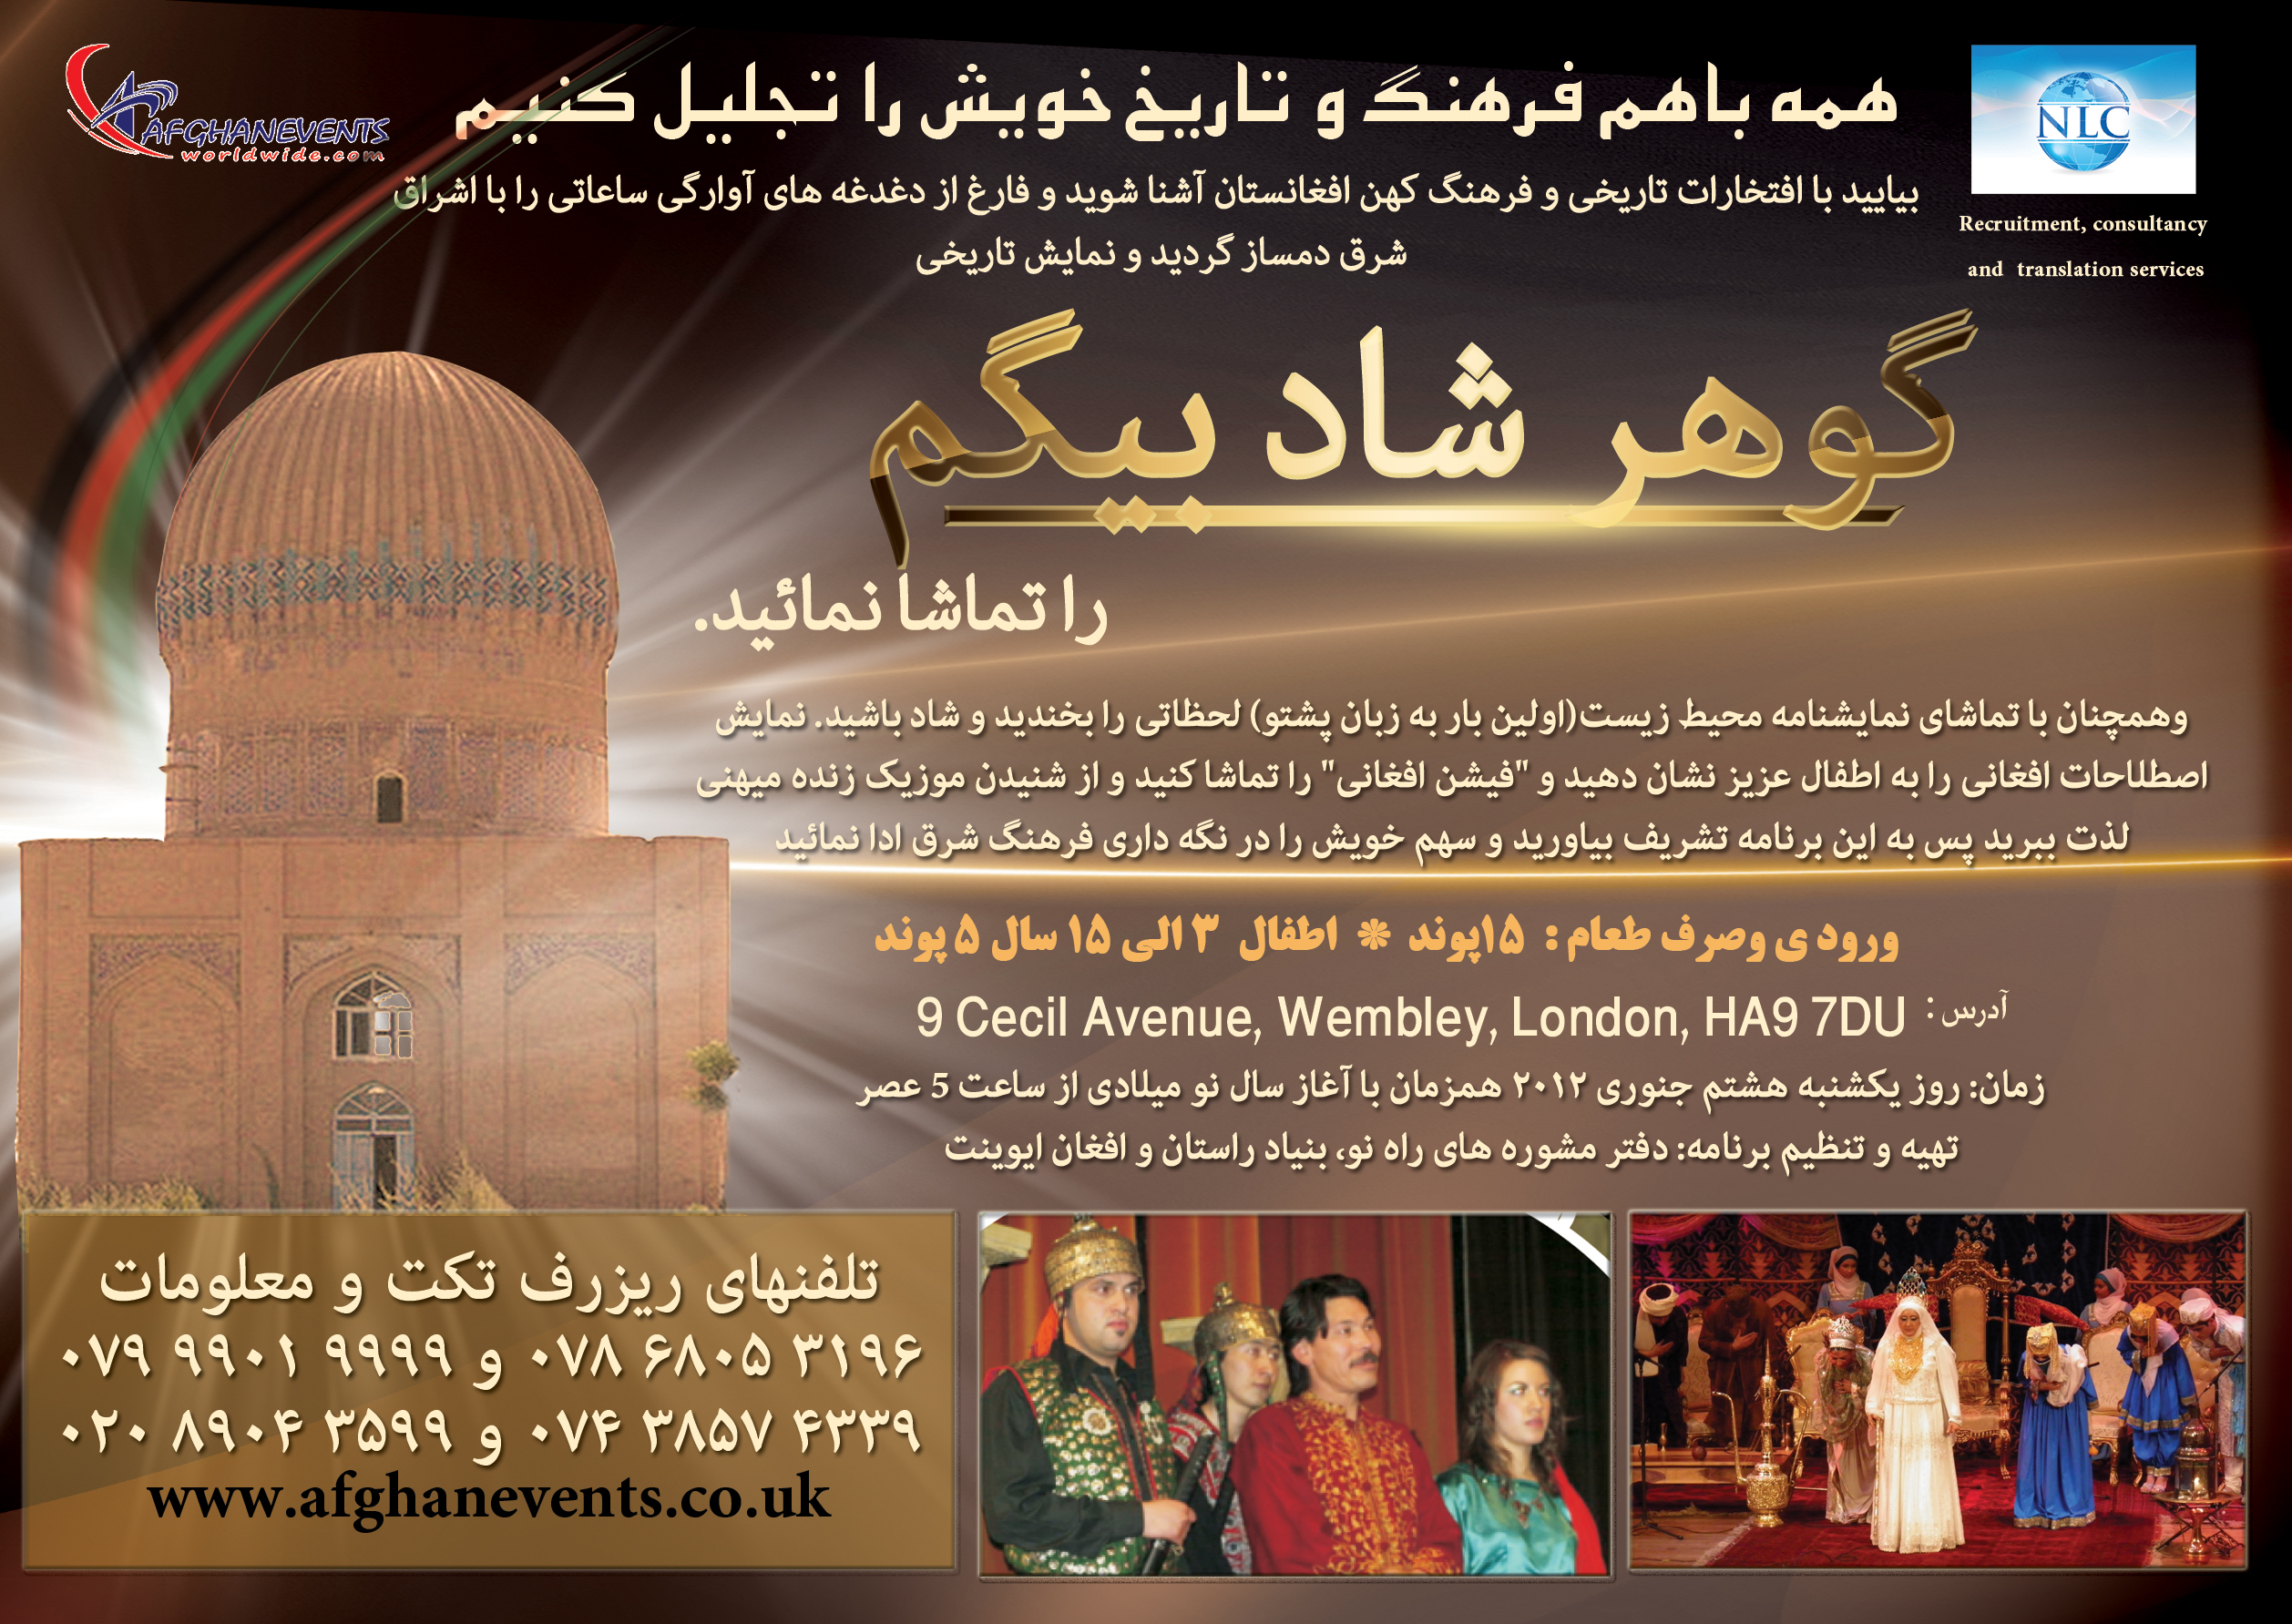 Afghan Theatre in London 8th January 2012